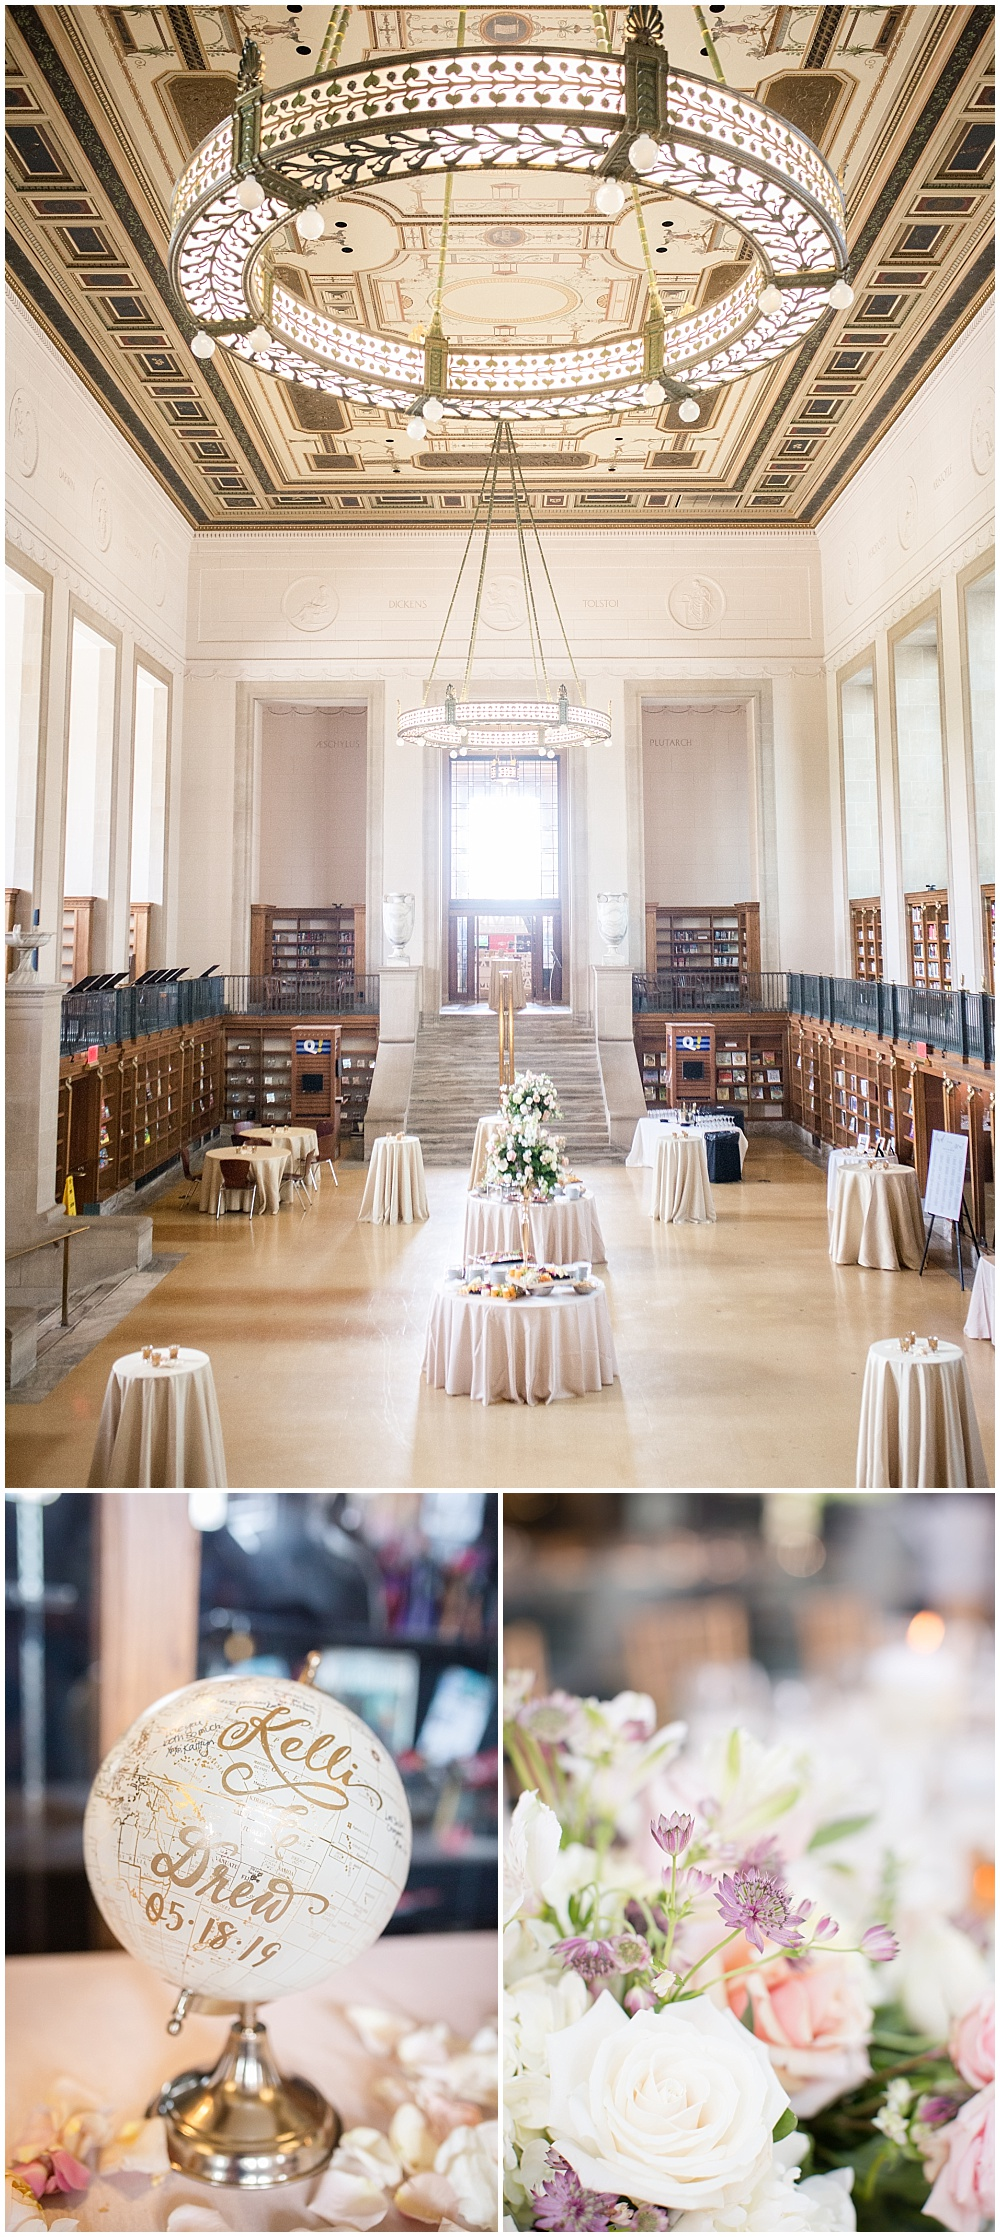 Central Library's Simon Reading Room cocktail hour and blush accents.   Spring blush and gold downtown Indianapolis Central Library wedding alongside Evangeline Renee Photography + Jessica Dum Wedding Coordination